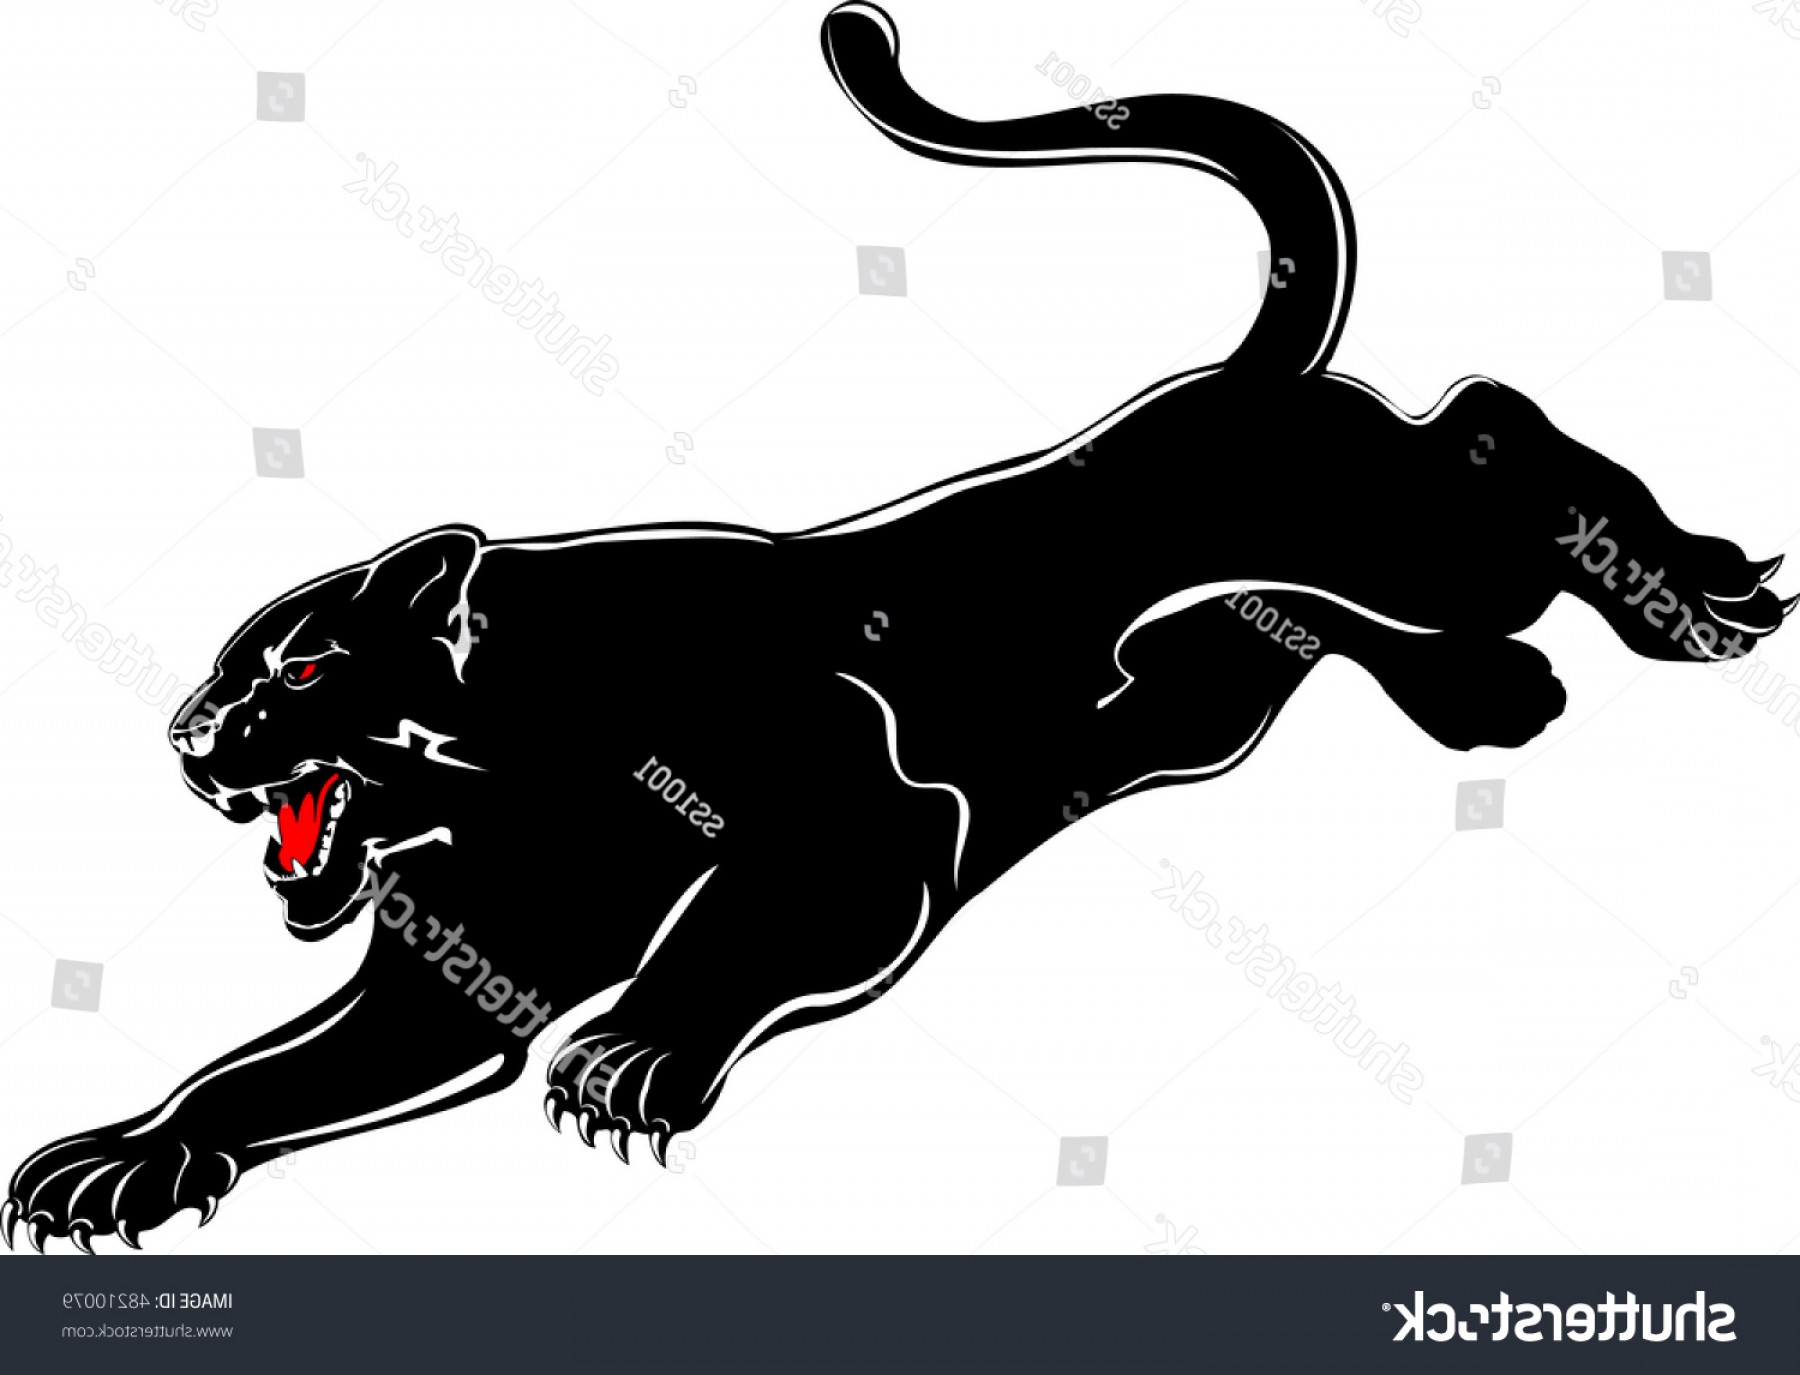 Panther Silhouette Vector: Vector Image Attacking Black Panther